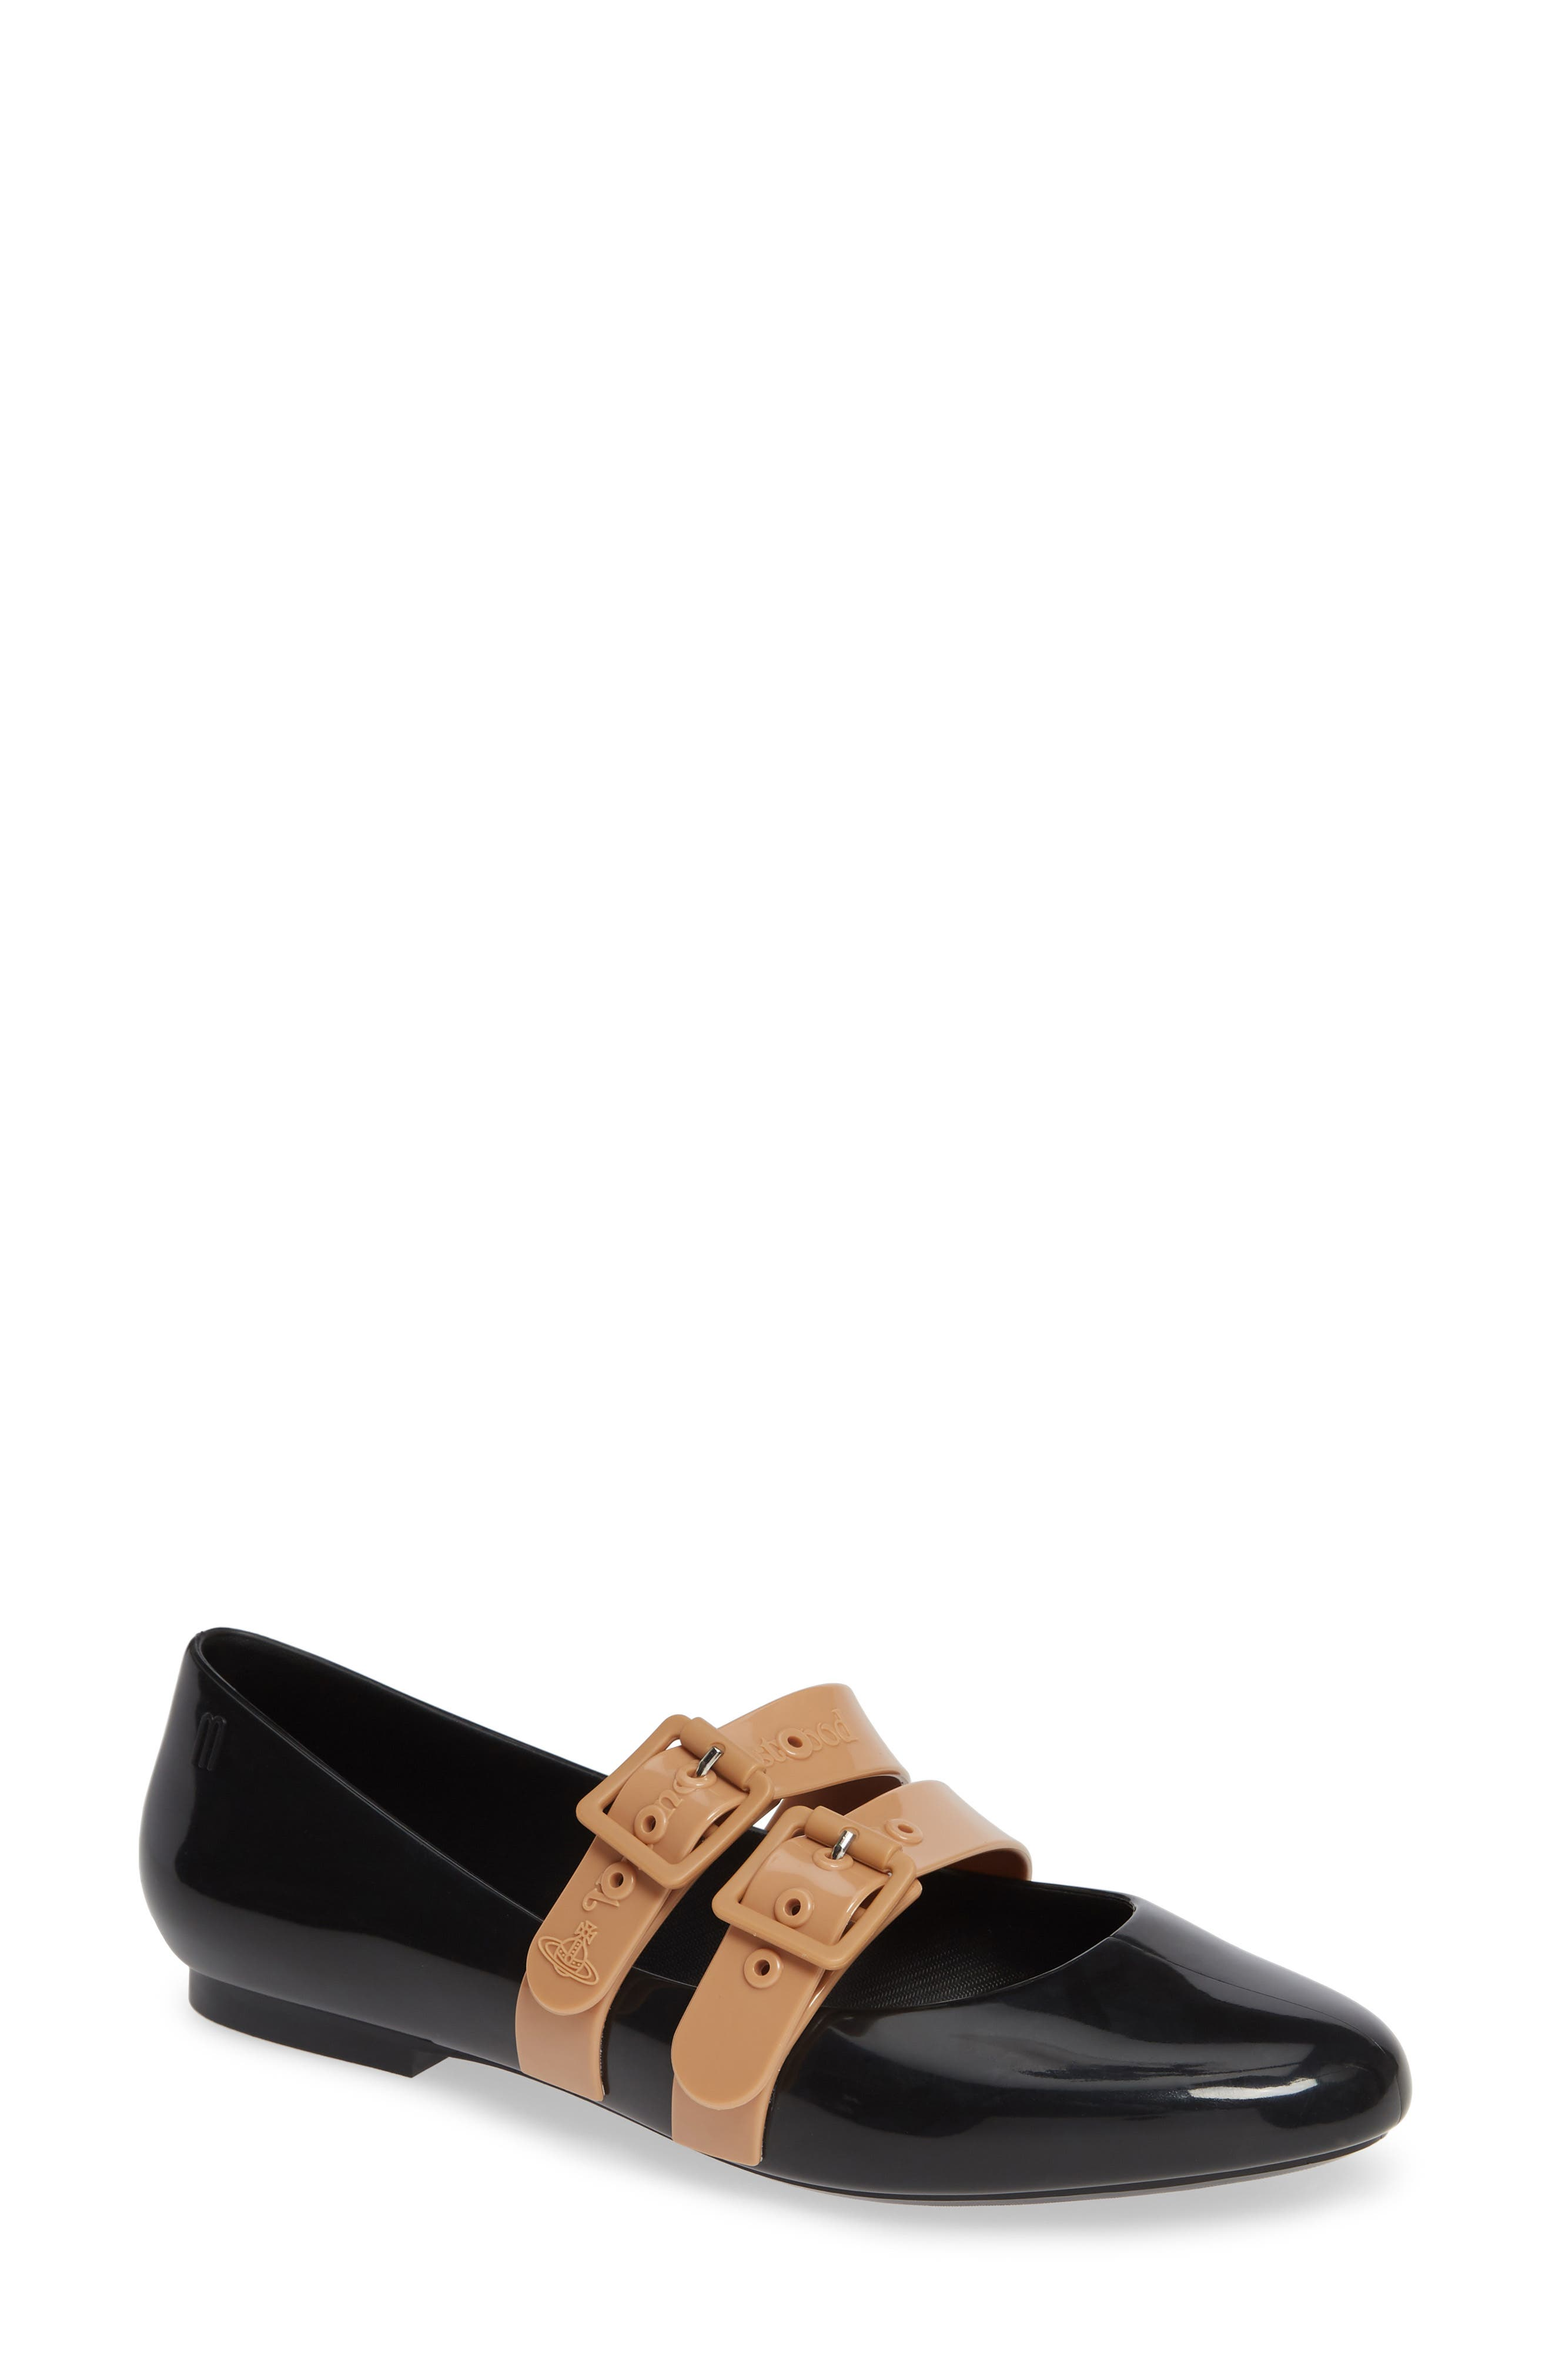 Image of Melissa Double Buckle Patent Flat